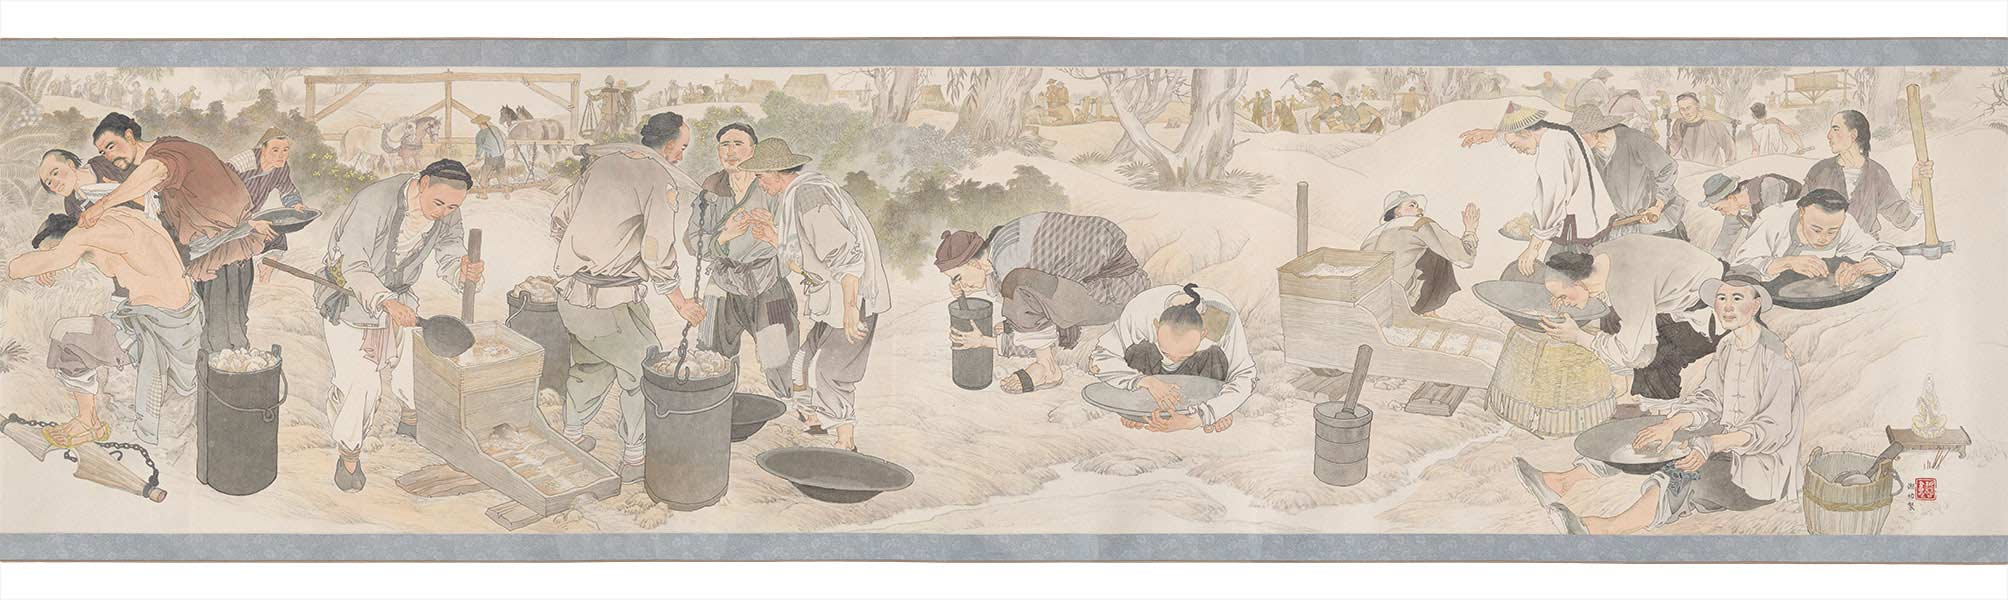 Detail of the Harvest of Endurance scroll. - click to view larger image